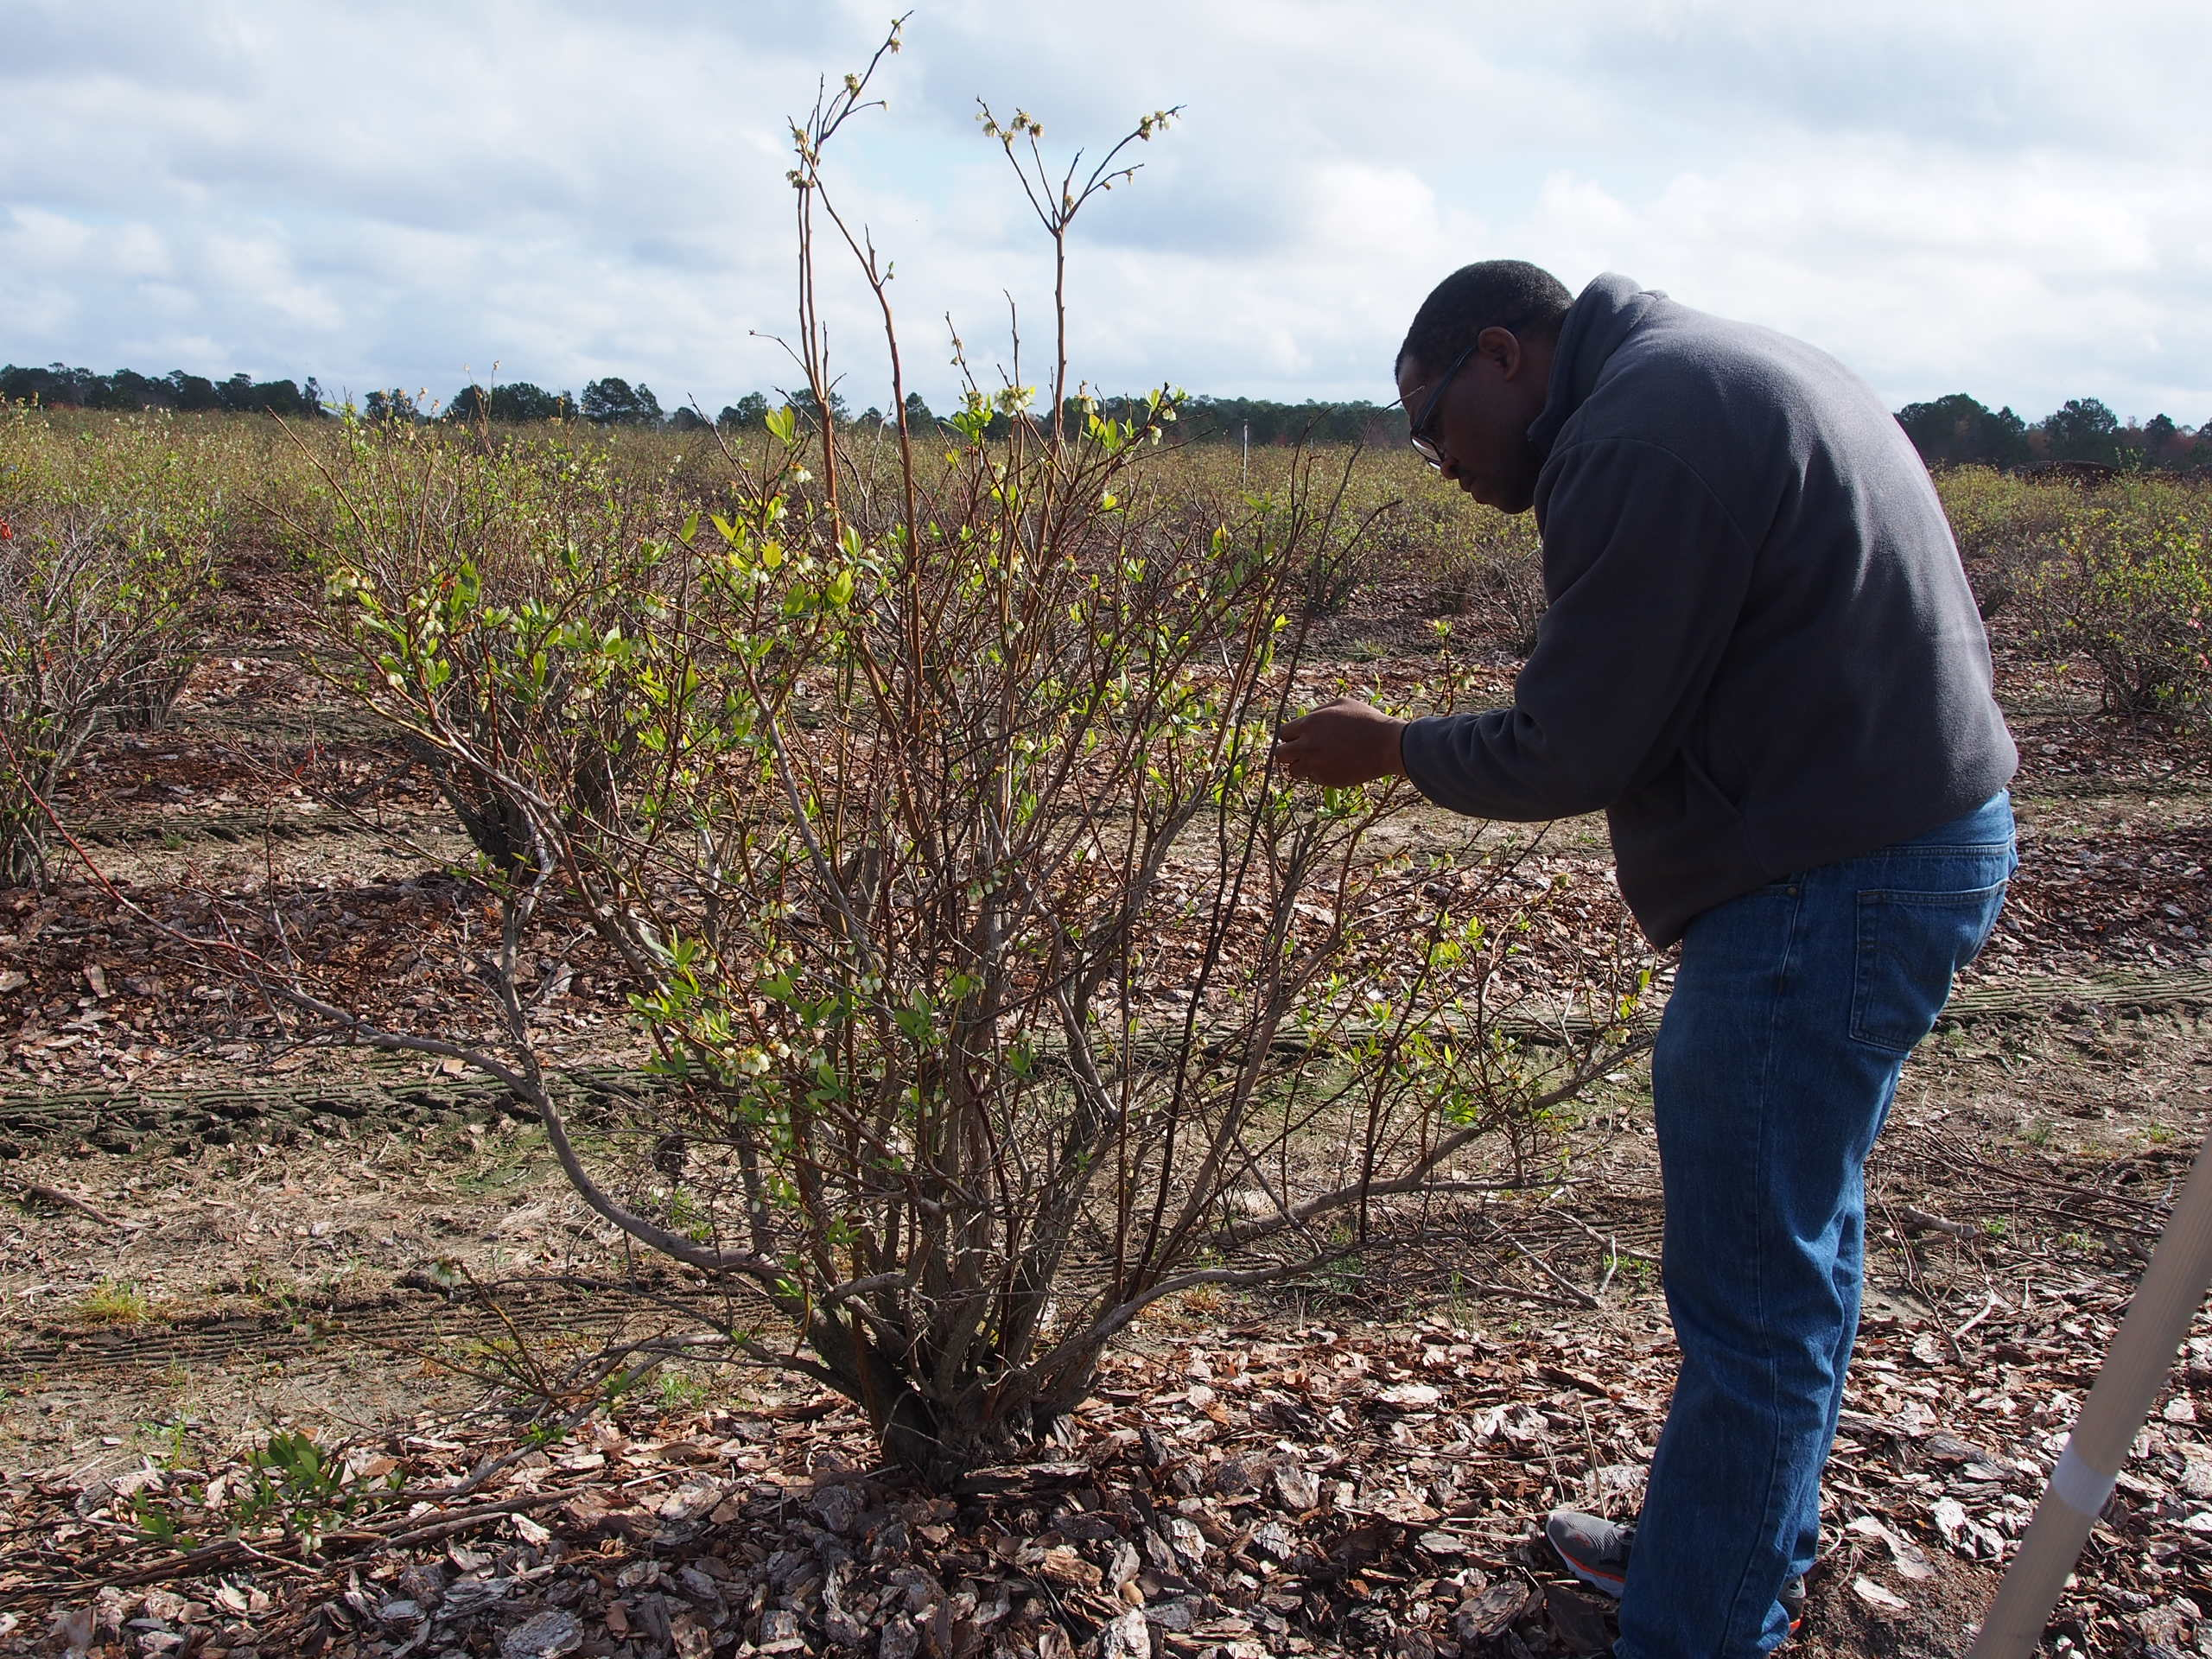 Postdoctoral Research Associate Joseph Disi inspects blueberries during the field presentations at the UGA Blueberry Team's 2018 Integrated Pest Management Team's Field Day in Alma, Georgia.